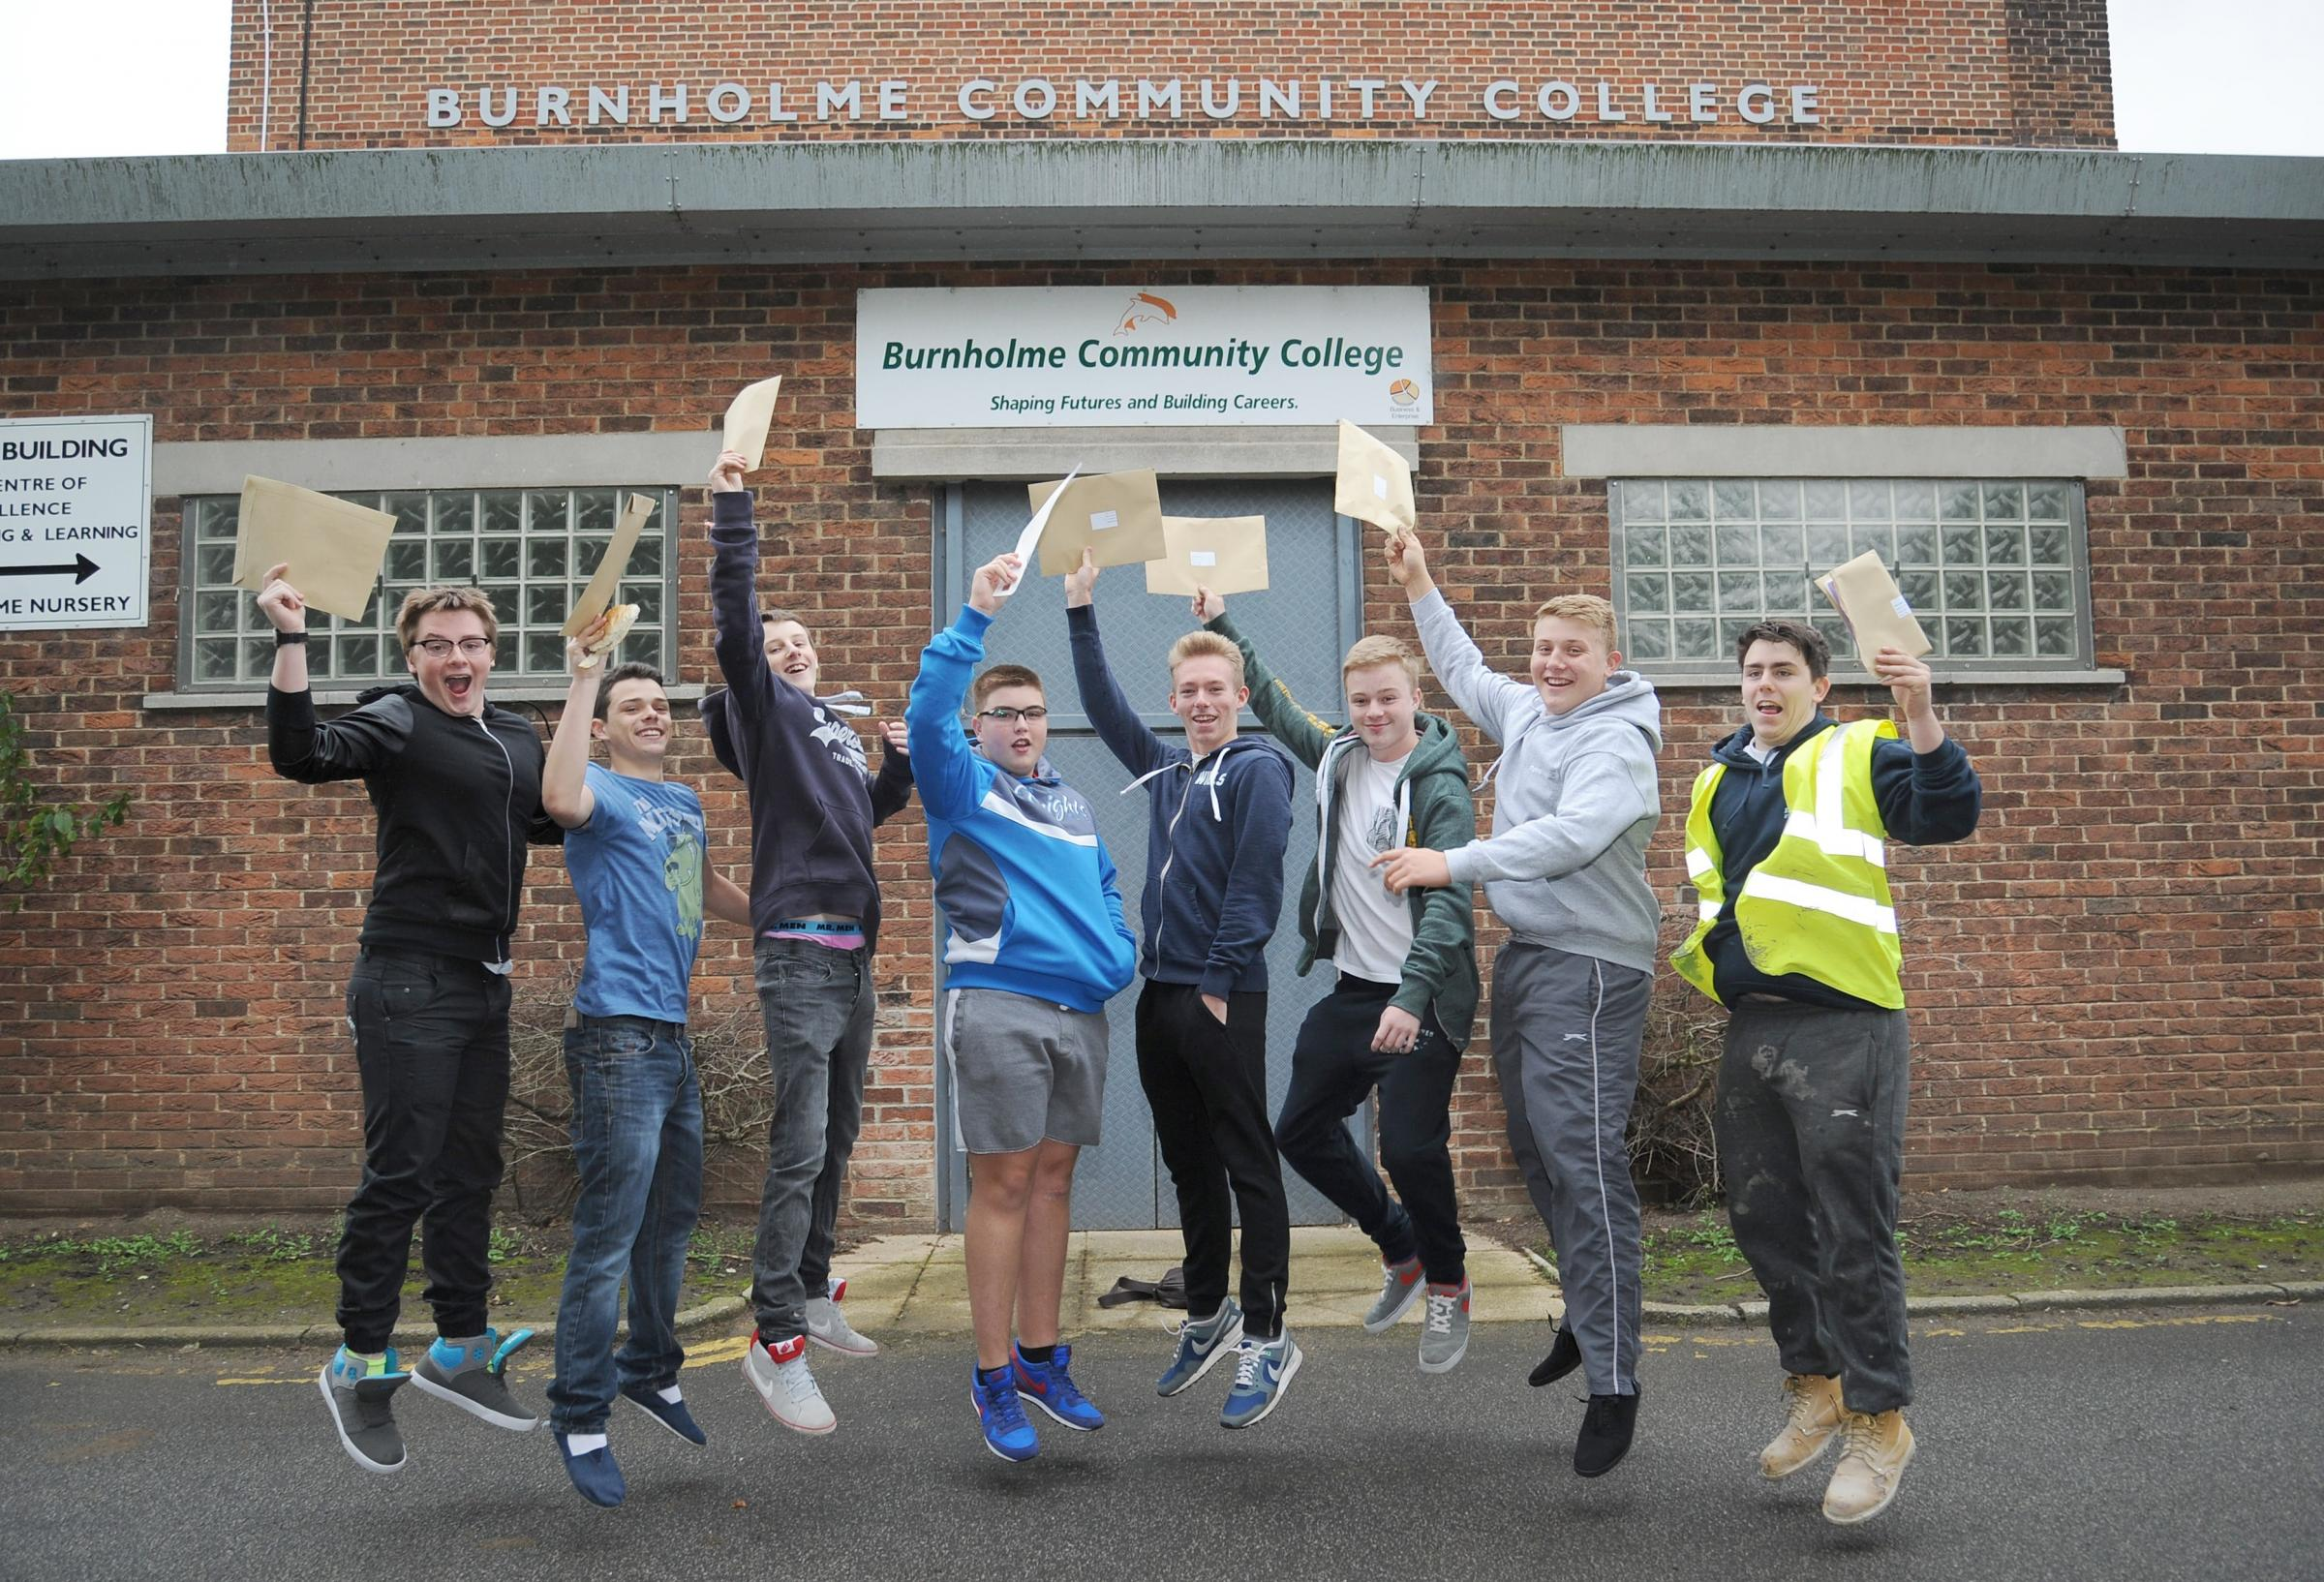 Jack Harrington, Jack Longstaff, Tristan Trown, George Leatt, Declan Moon, Joe Baldock, Eoin Manson and Arran Naismith celebrate their GCSE results at Burnholme Community College